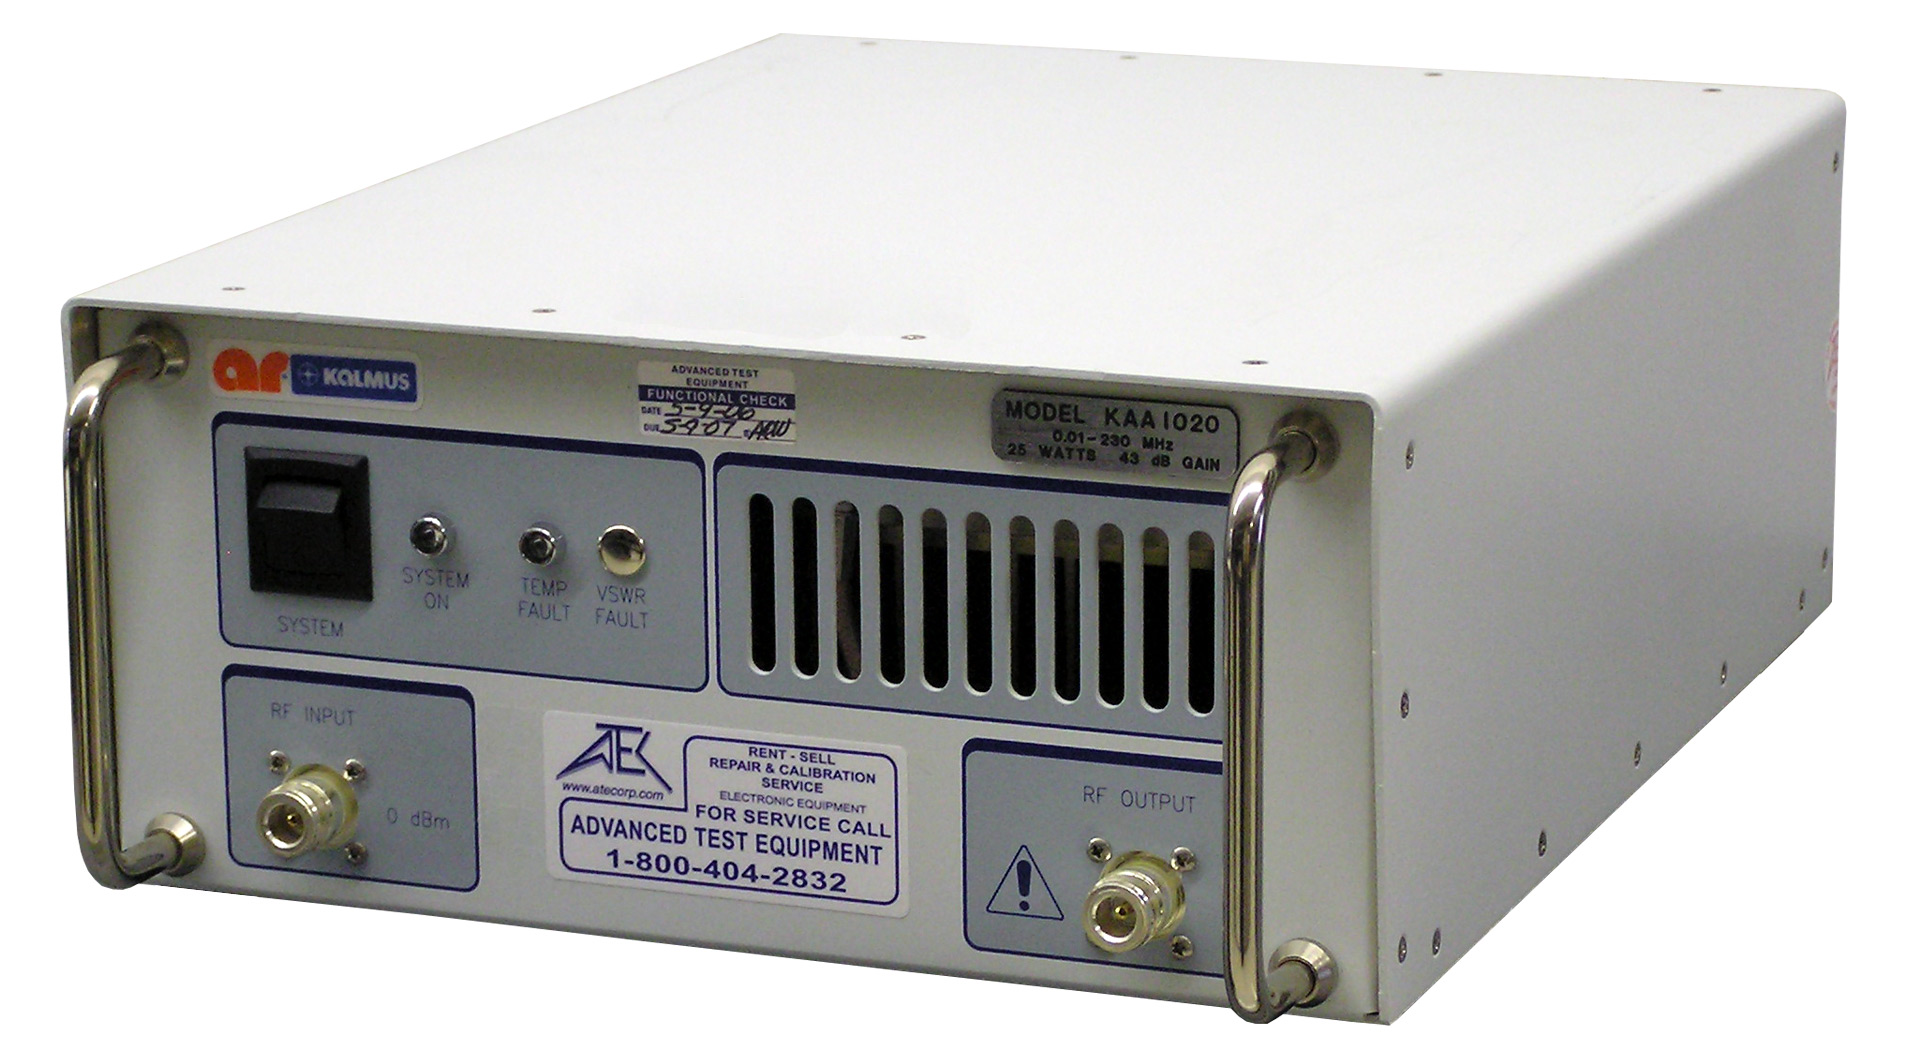 Amplifier Research KAA1020 RF Power Amplifier 0.01 MHz - 230 MHz